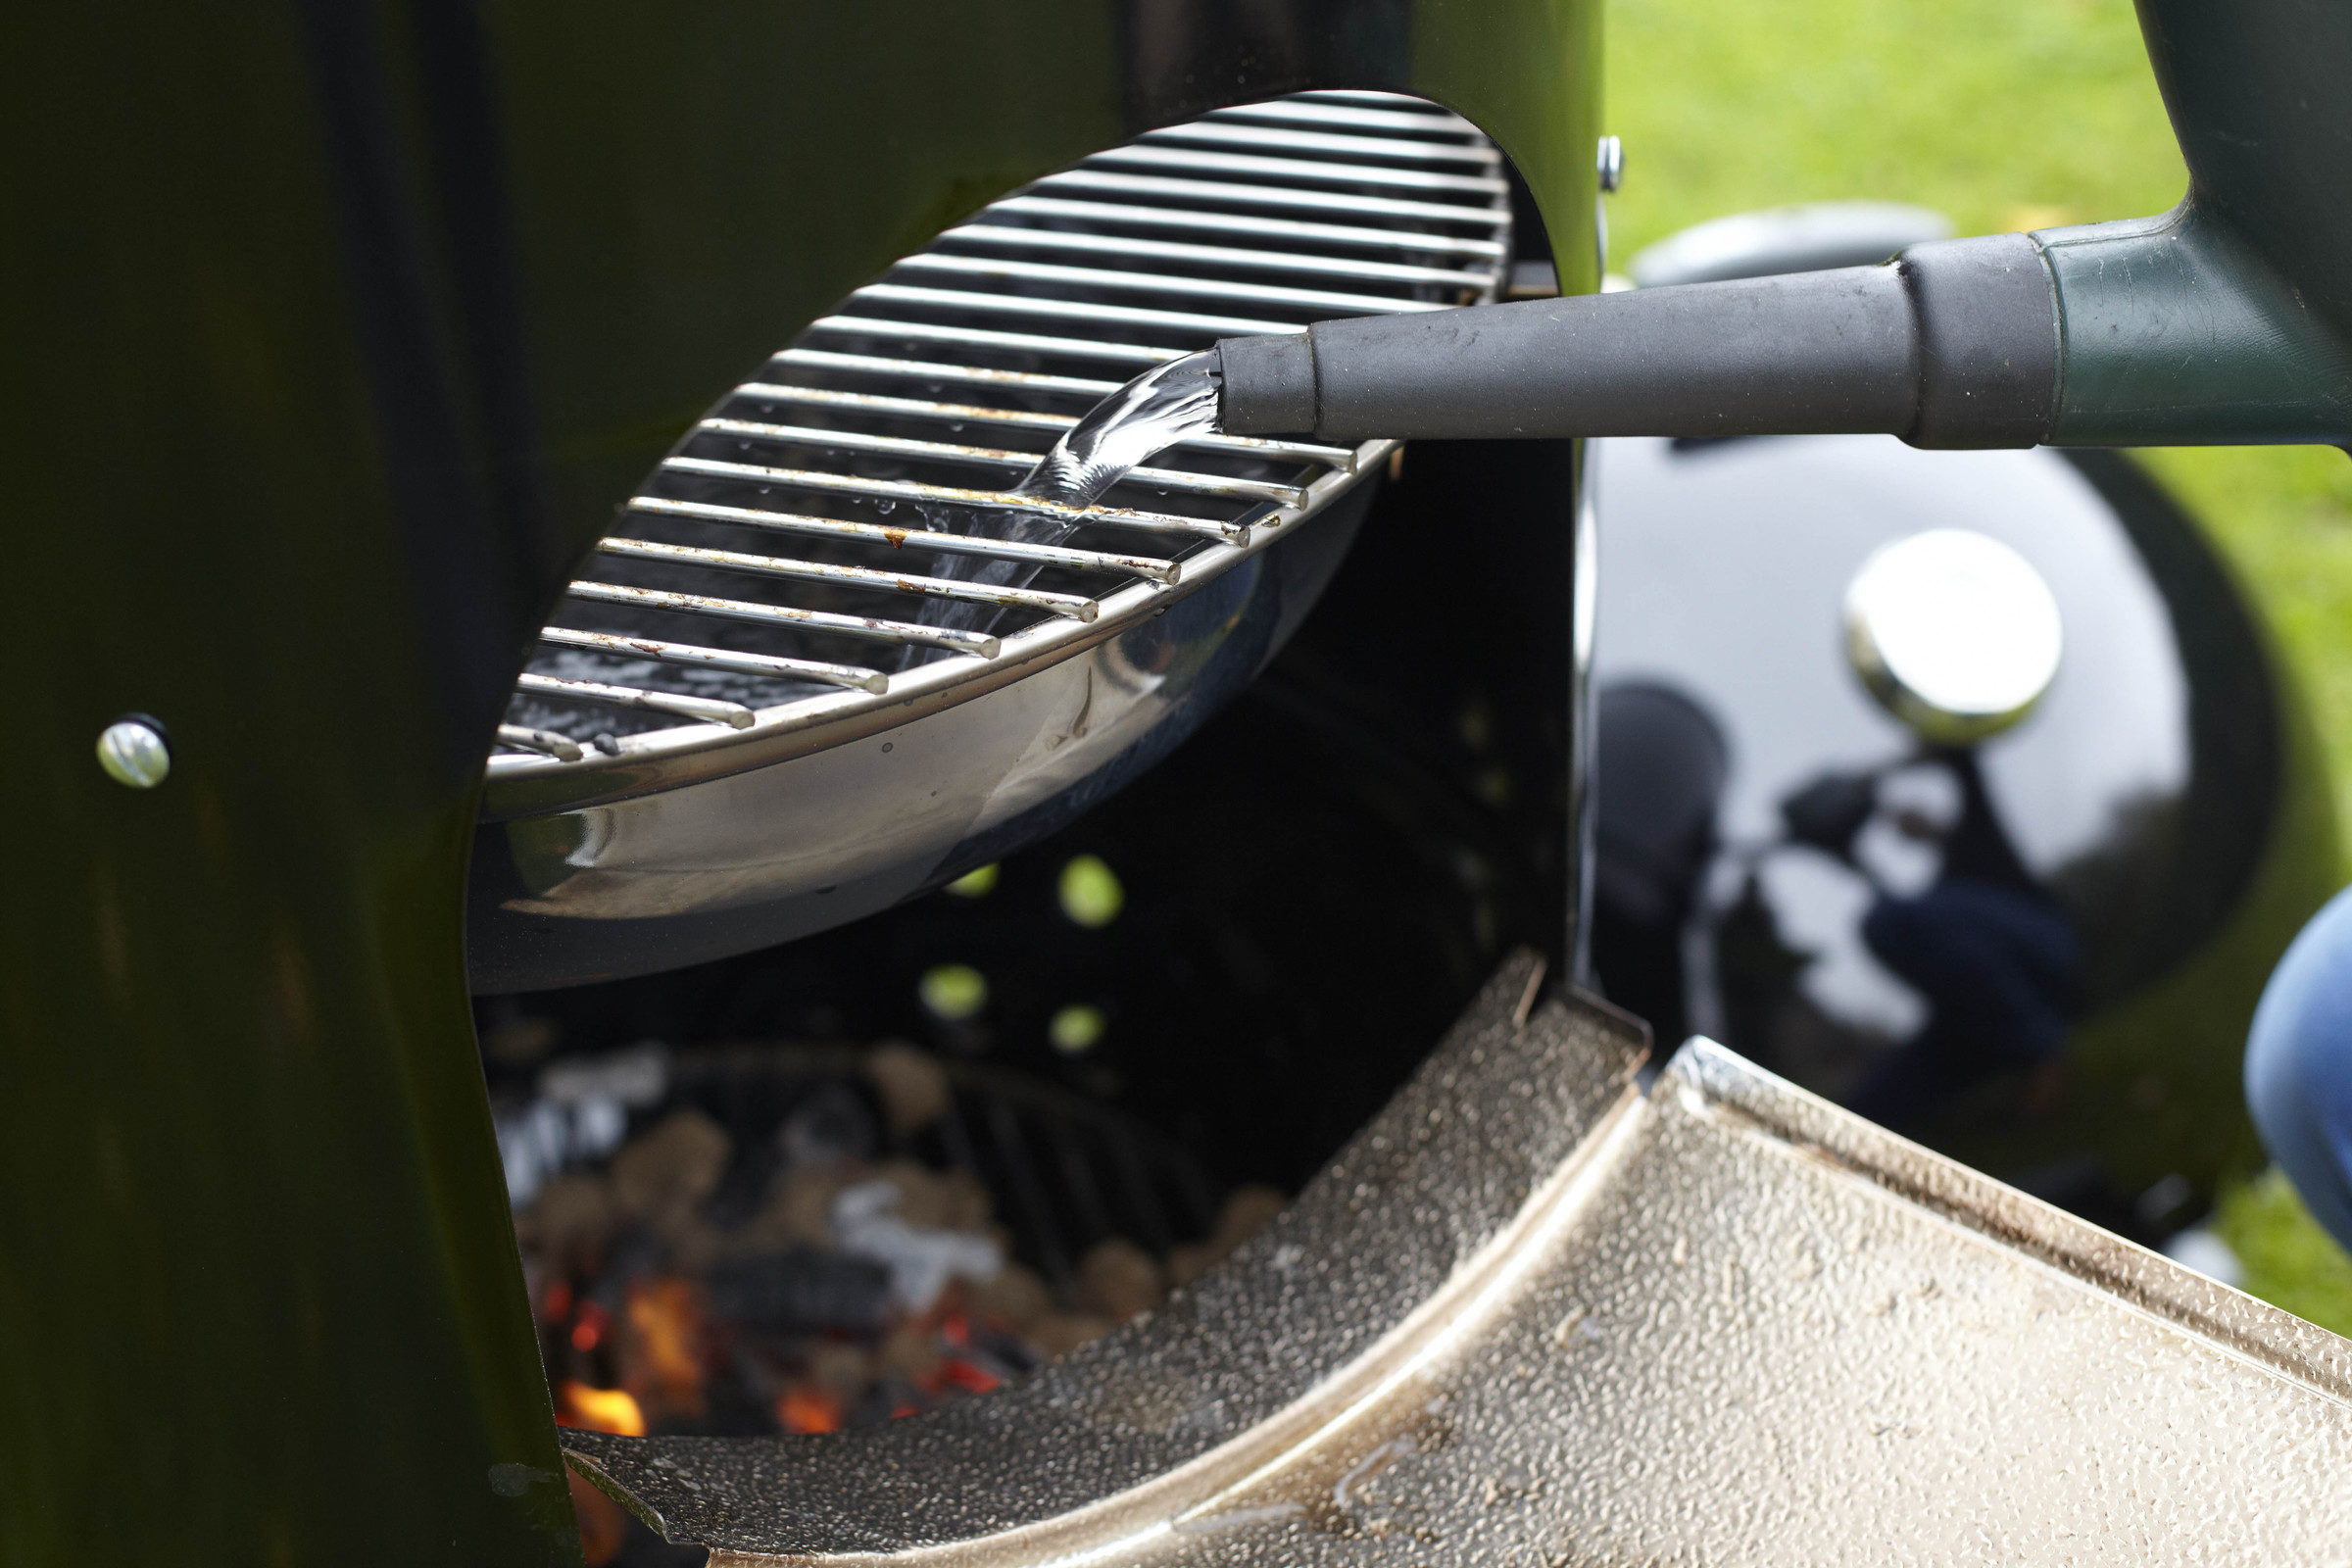 Weber 37cm Smokey Mountain Cooker - Weber pan